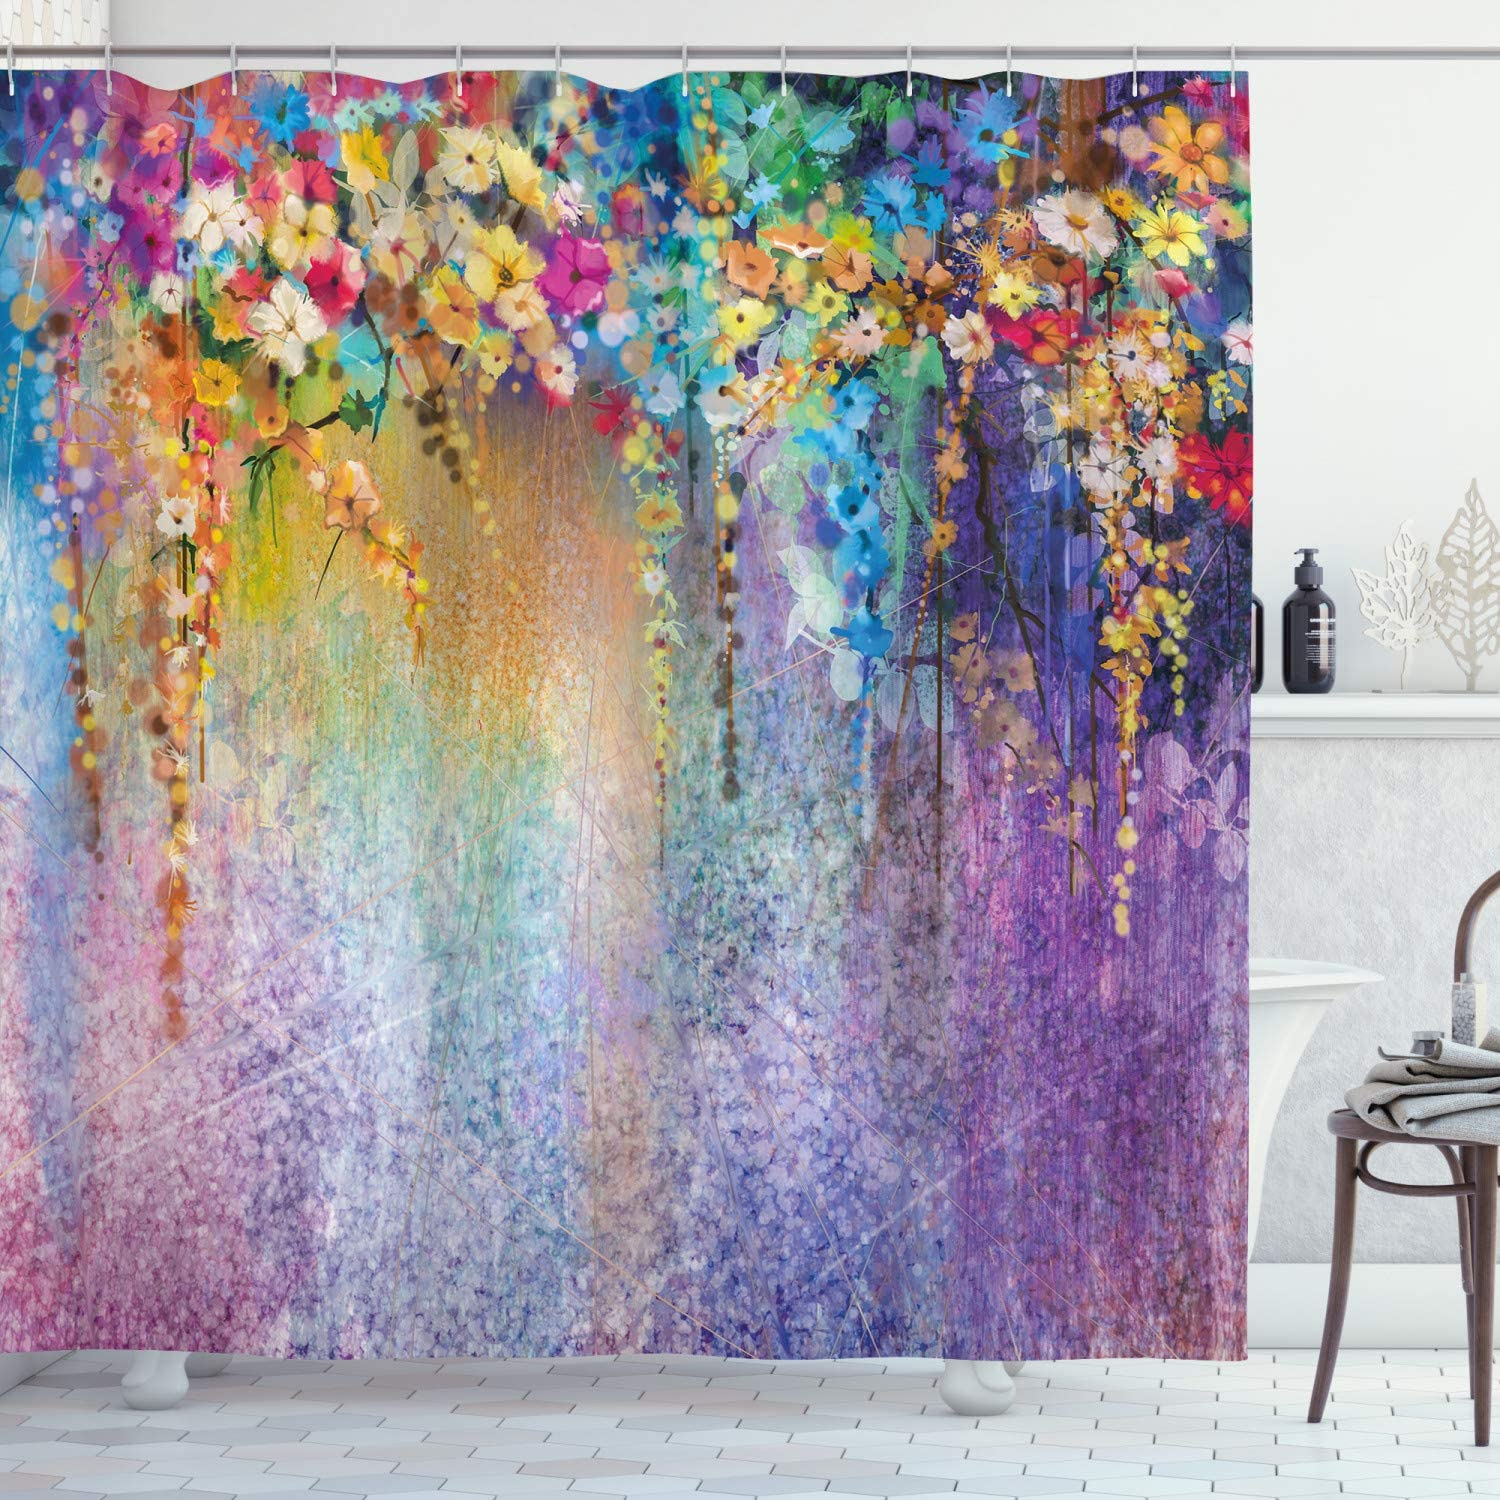 Ambesonne Flower Shower Curtain, Abstract Herbs Weeds Alternative Medicine Blossoms Ivy Back Florets Shrubs Design, Cloth Fabric Bathroom Decor Set with Hooks, 75